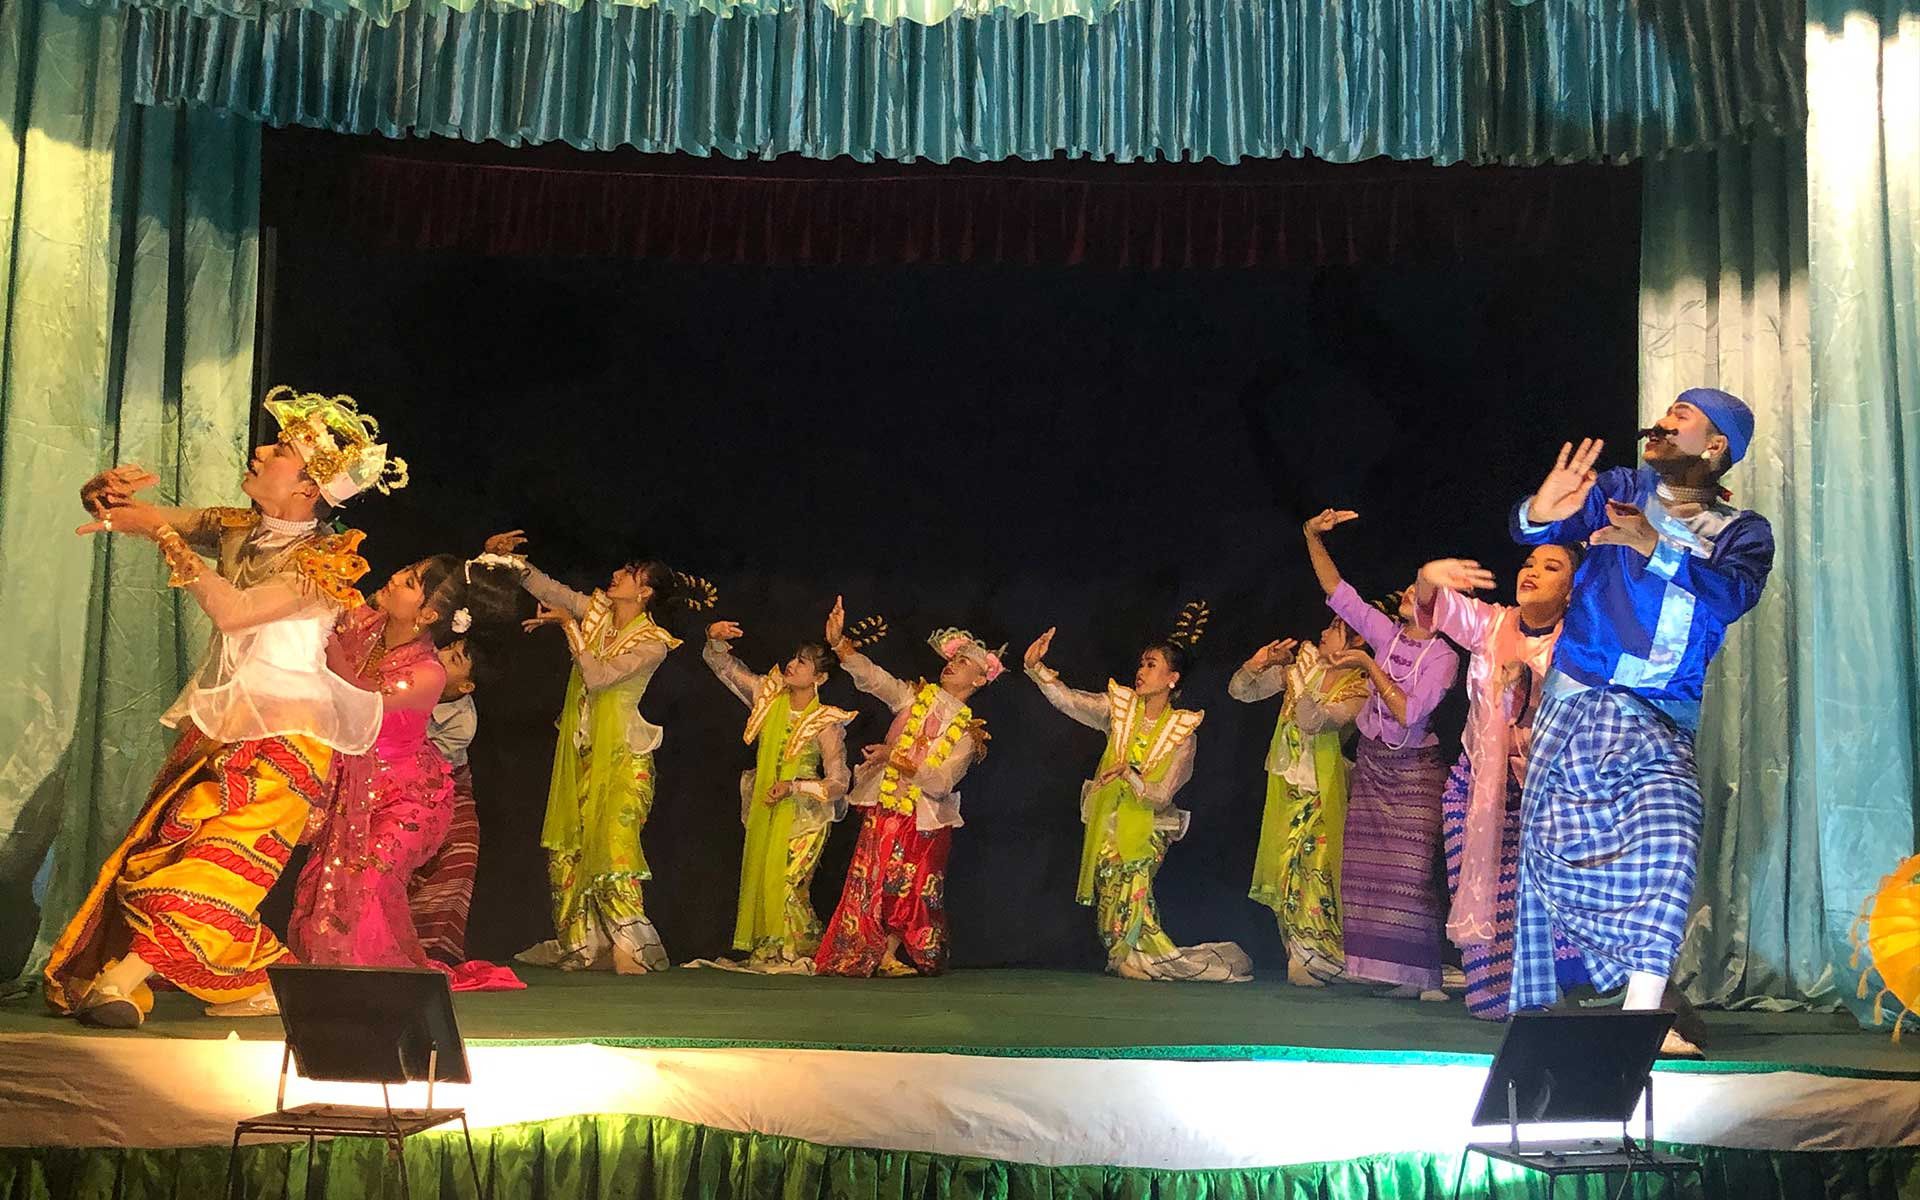 Classical Myanmar dance at Mintha Theater